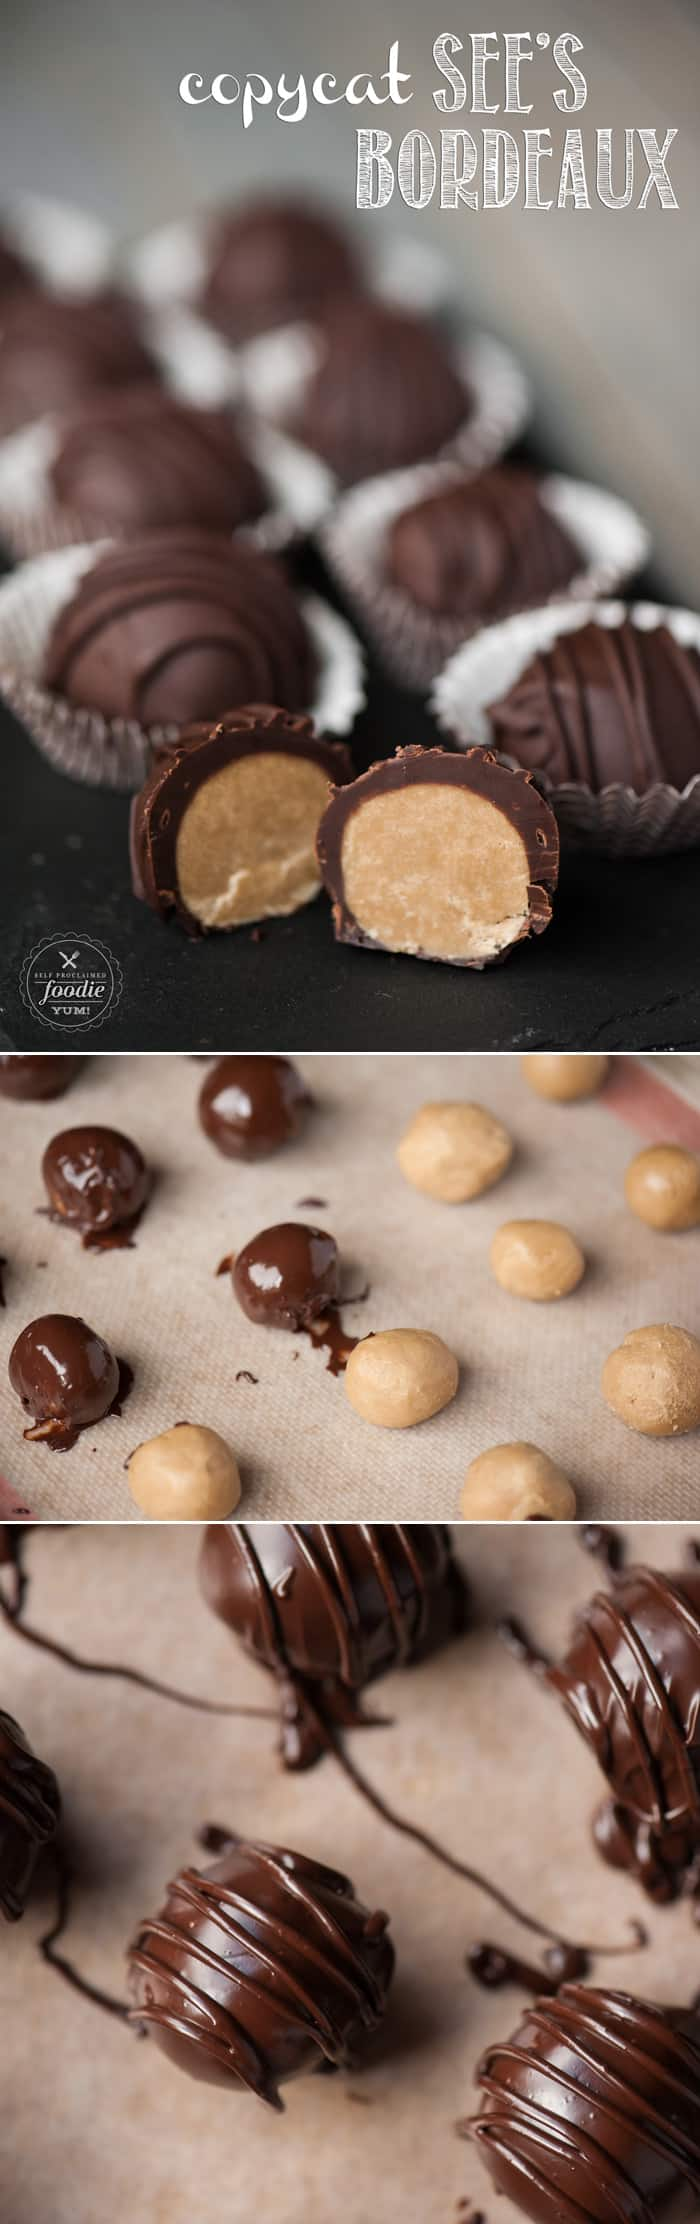 I wanted to see if I could replicate my favorite brown sugar bon bon to share as a holiday treat and the result was a perfect Copycat See's Bordeaux!